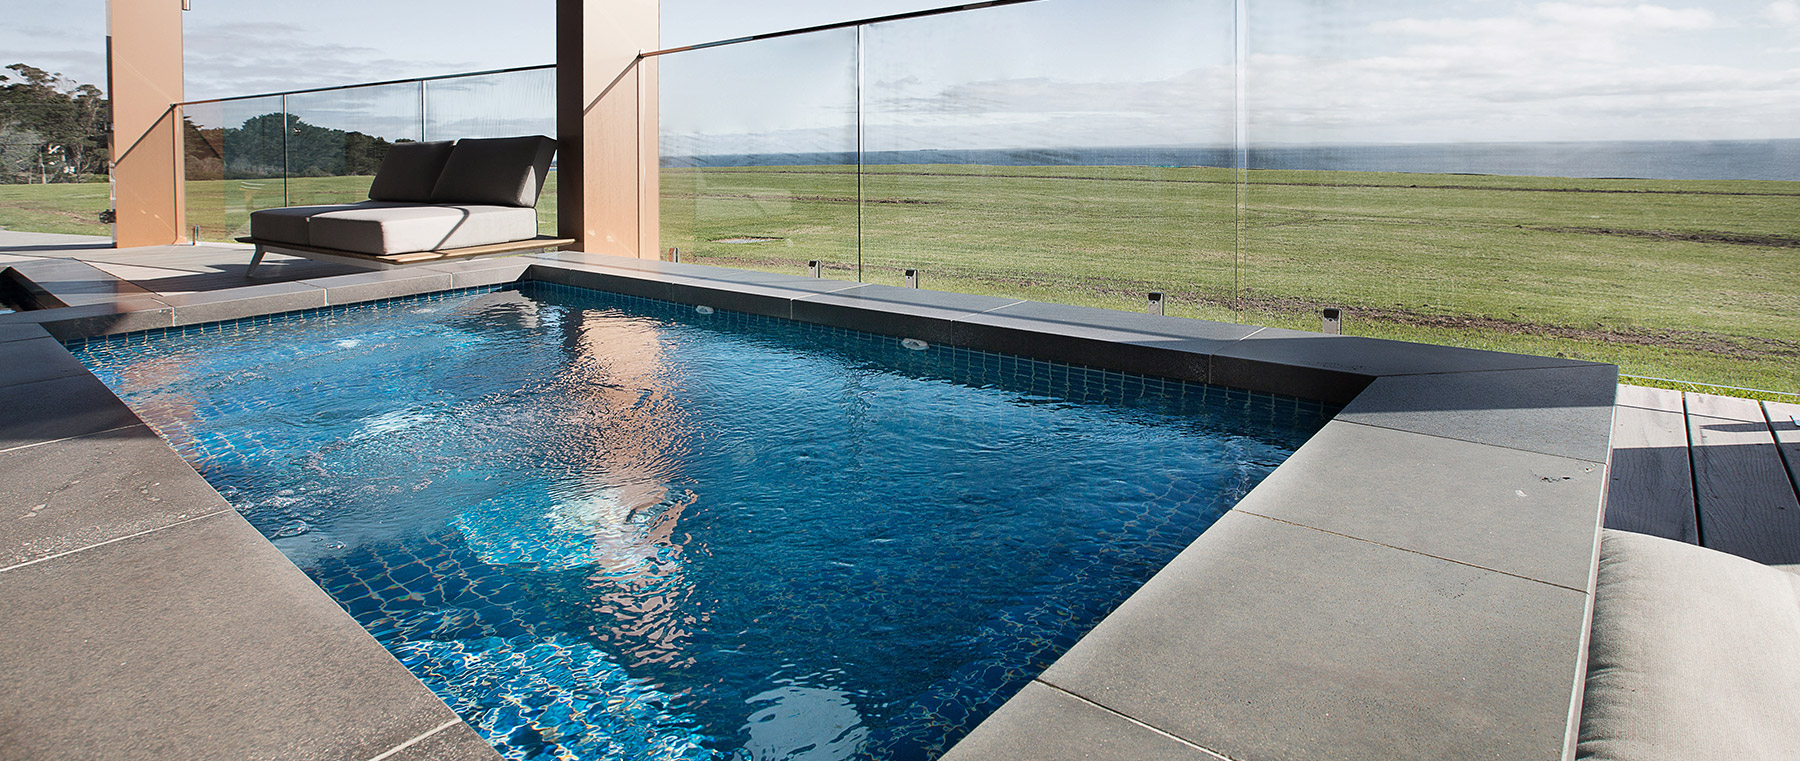 Luxury pools & spas